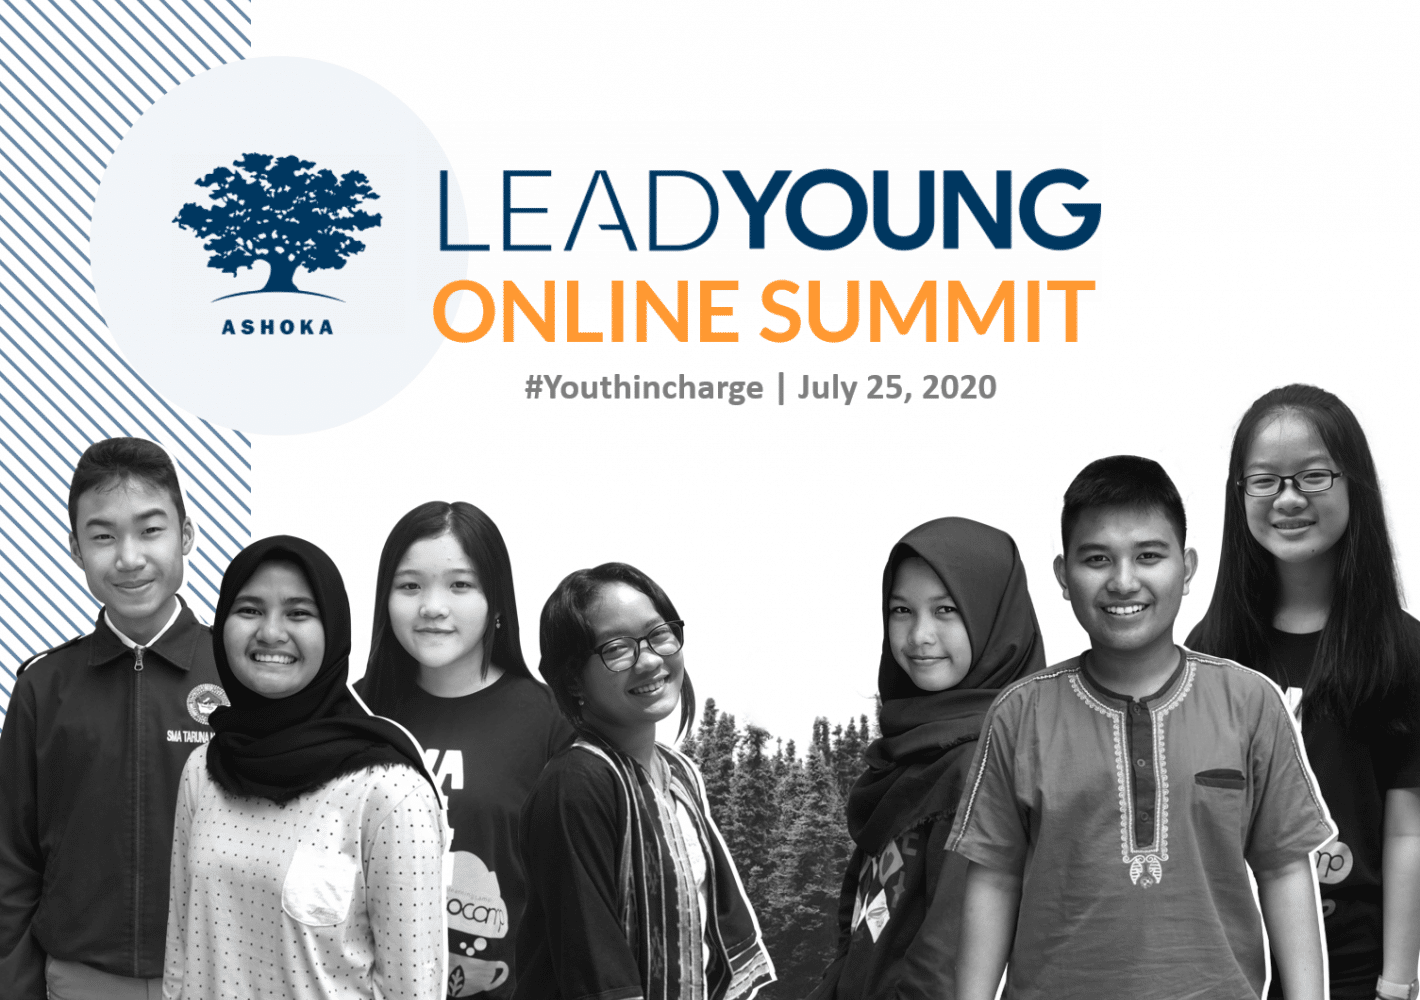 Lead Young Summit for live ashoka org